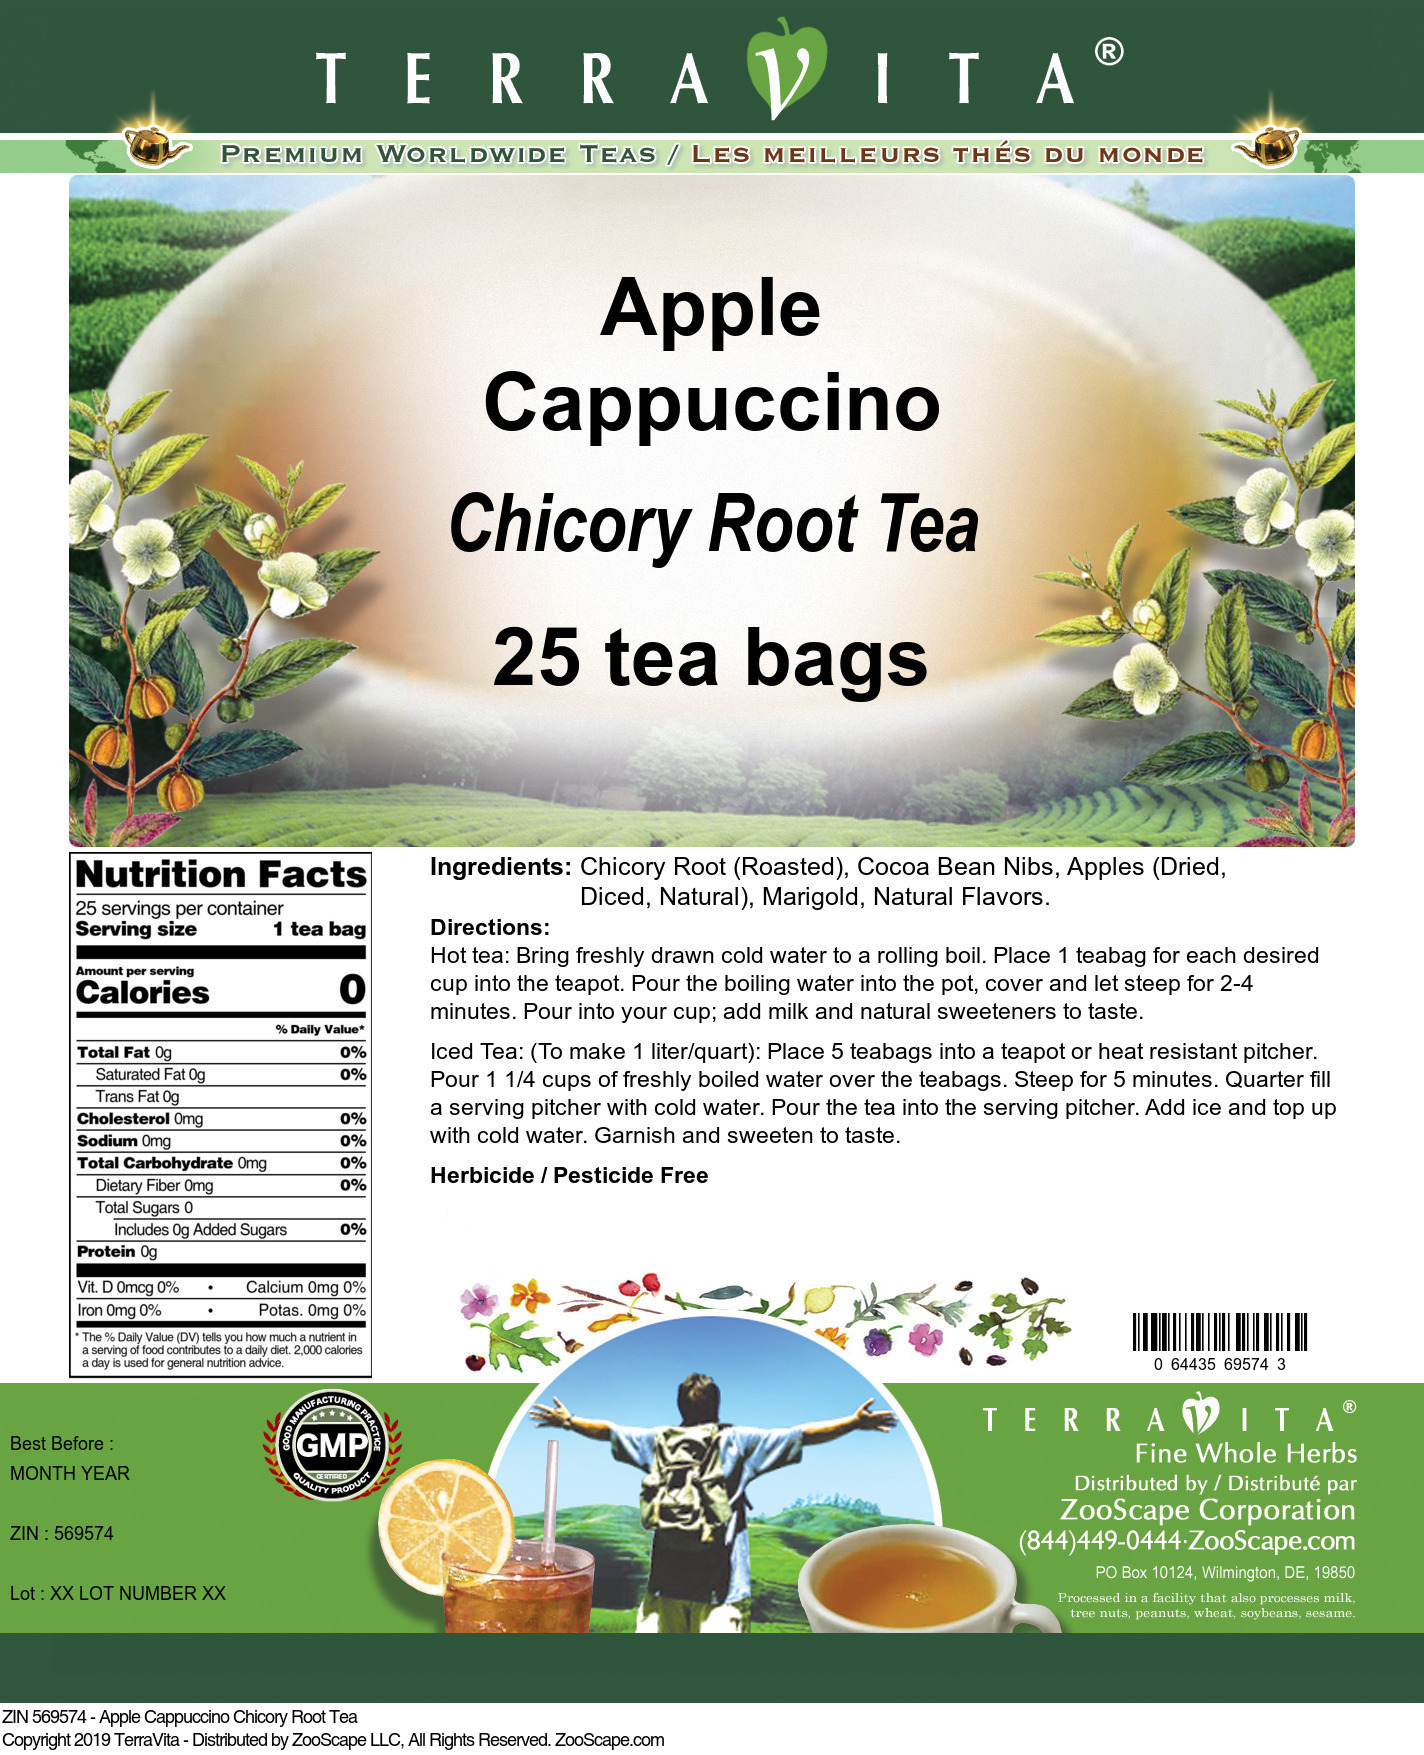 Apple Cappuccino Chicory Root